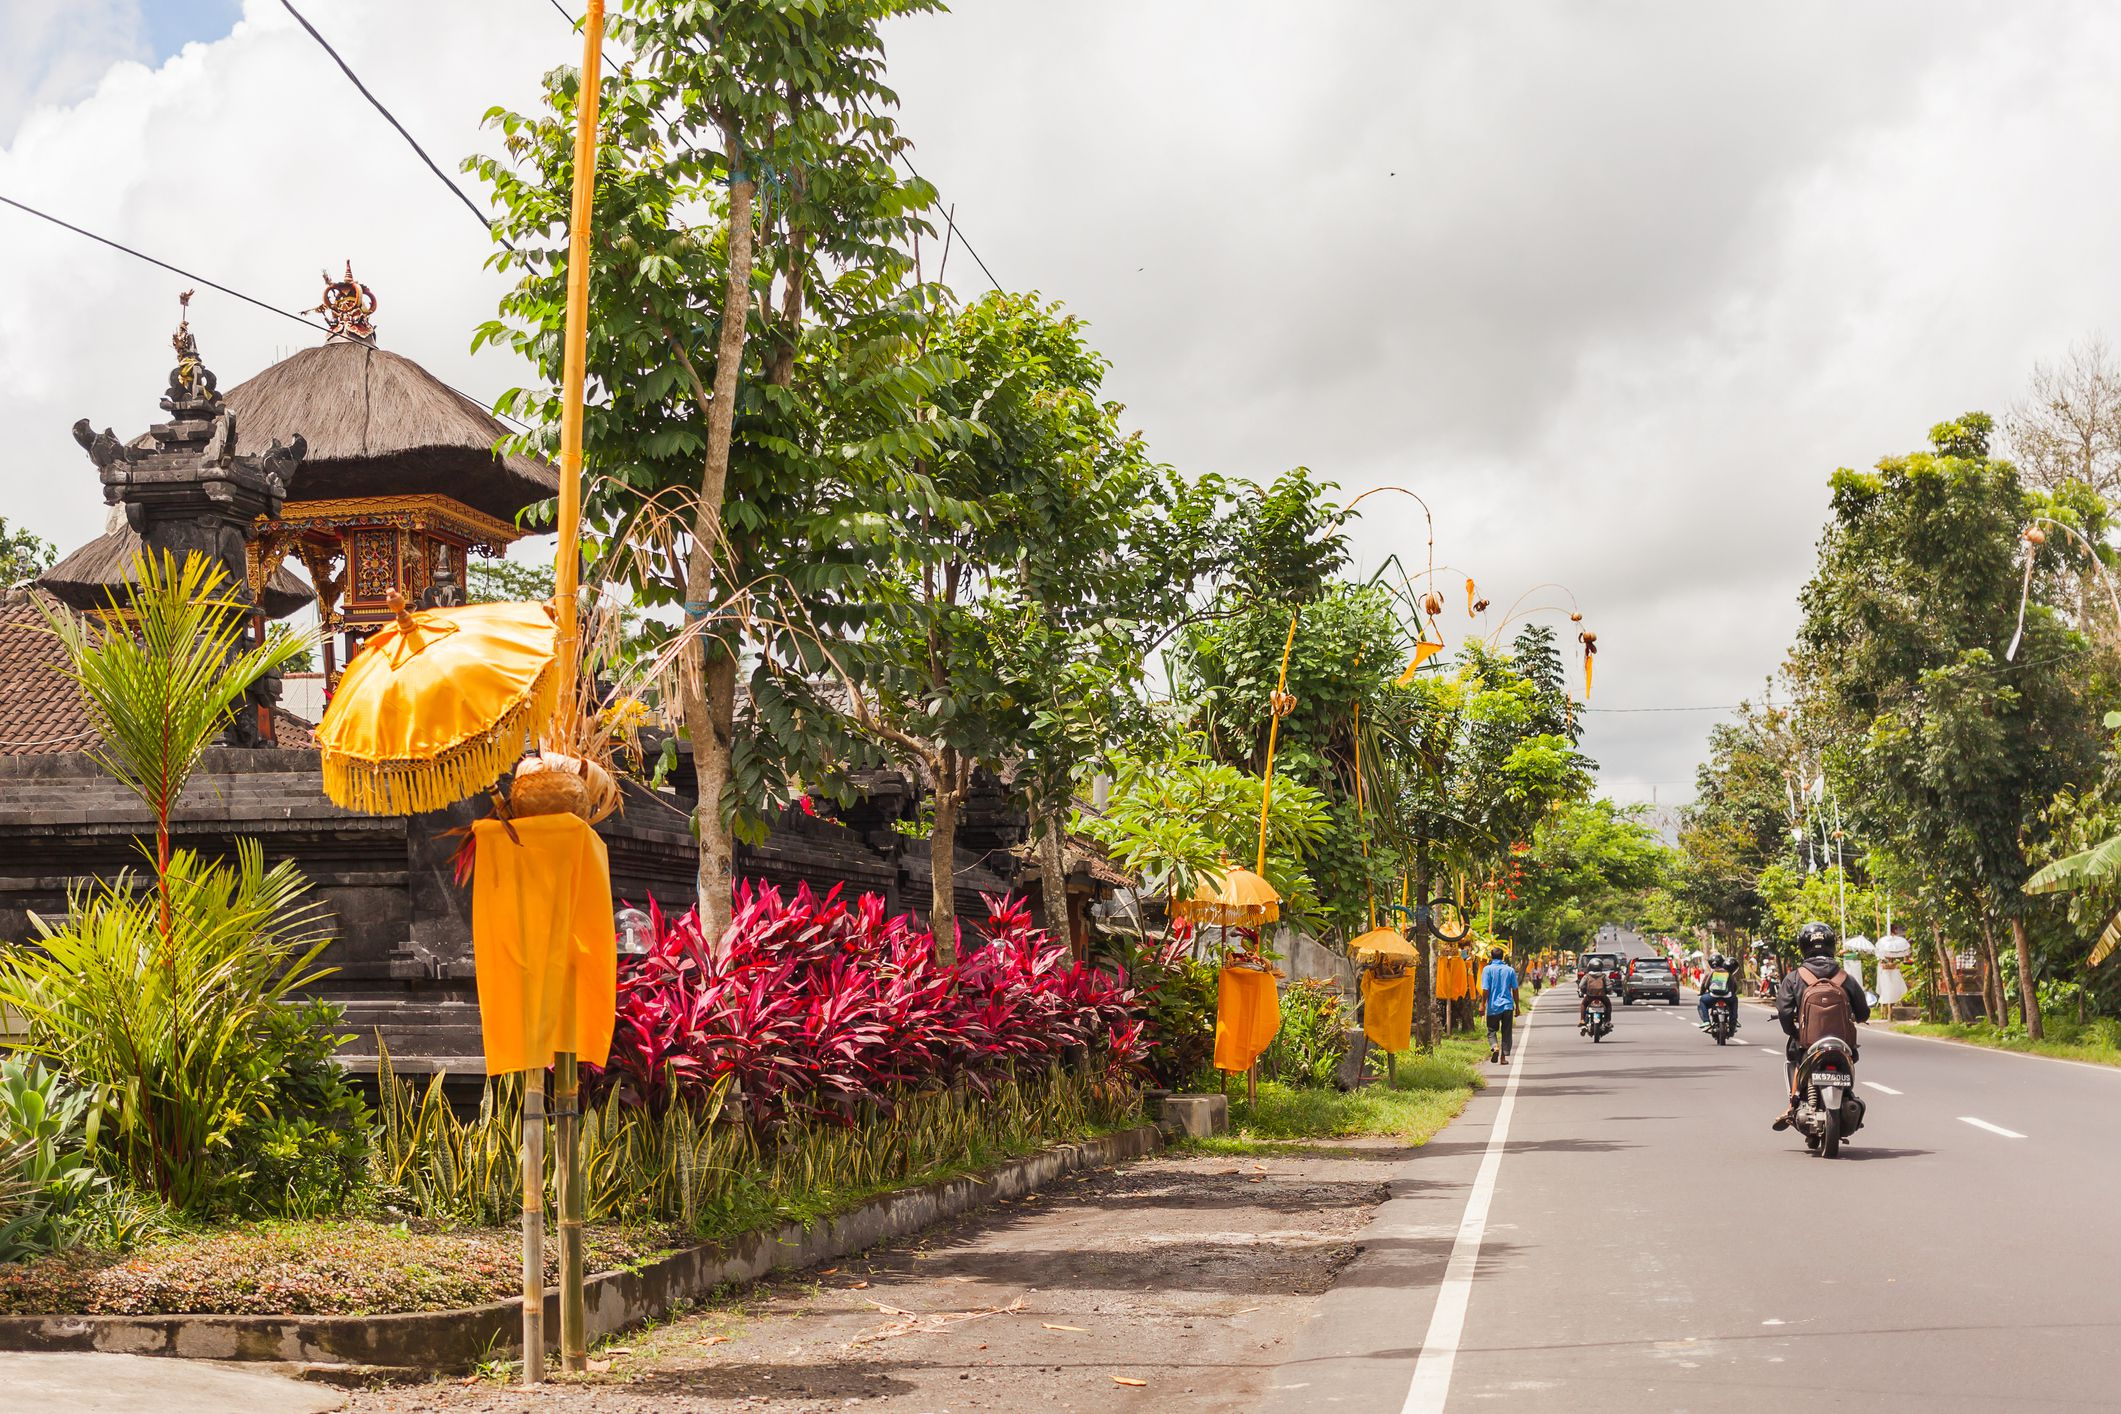 Religious decoration near houses on street. Road traffic in sunny day. Ubud, Bali, Indonesia.